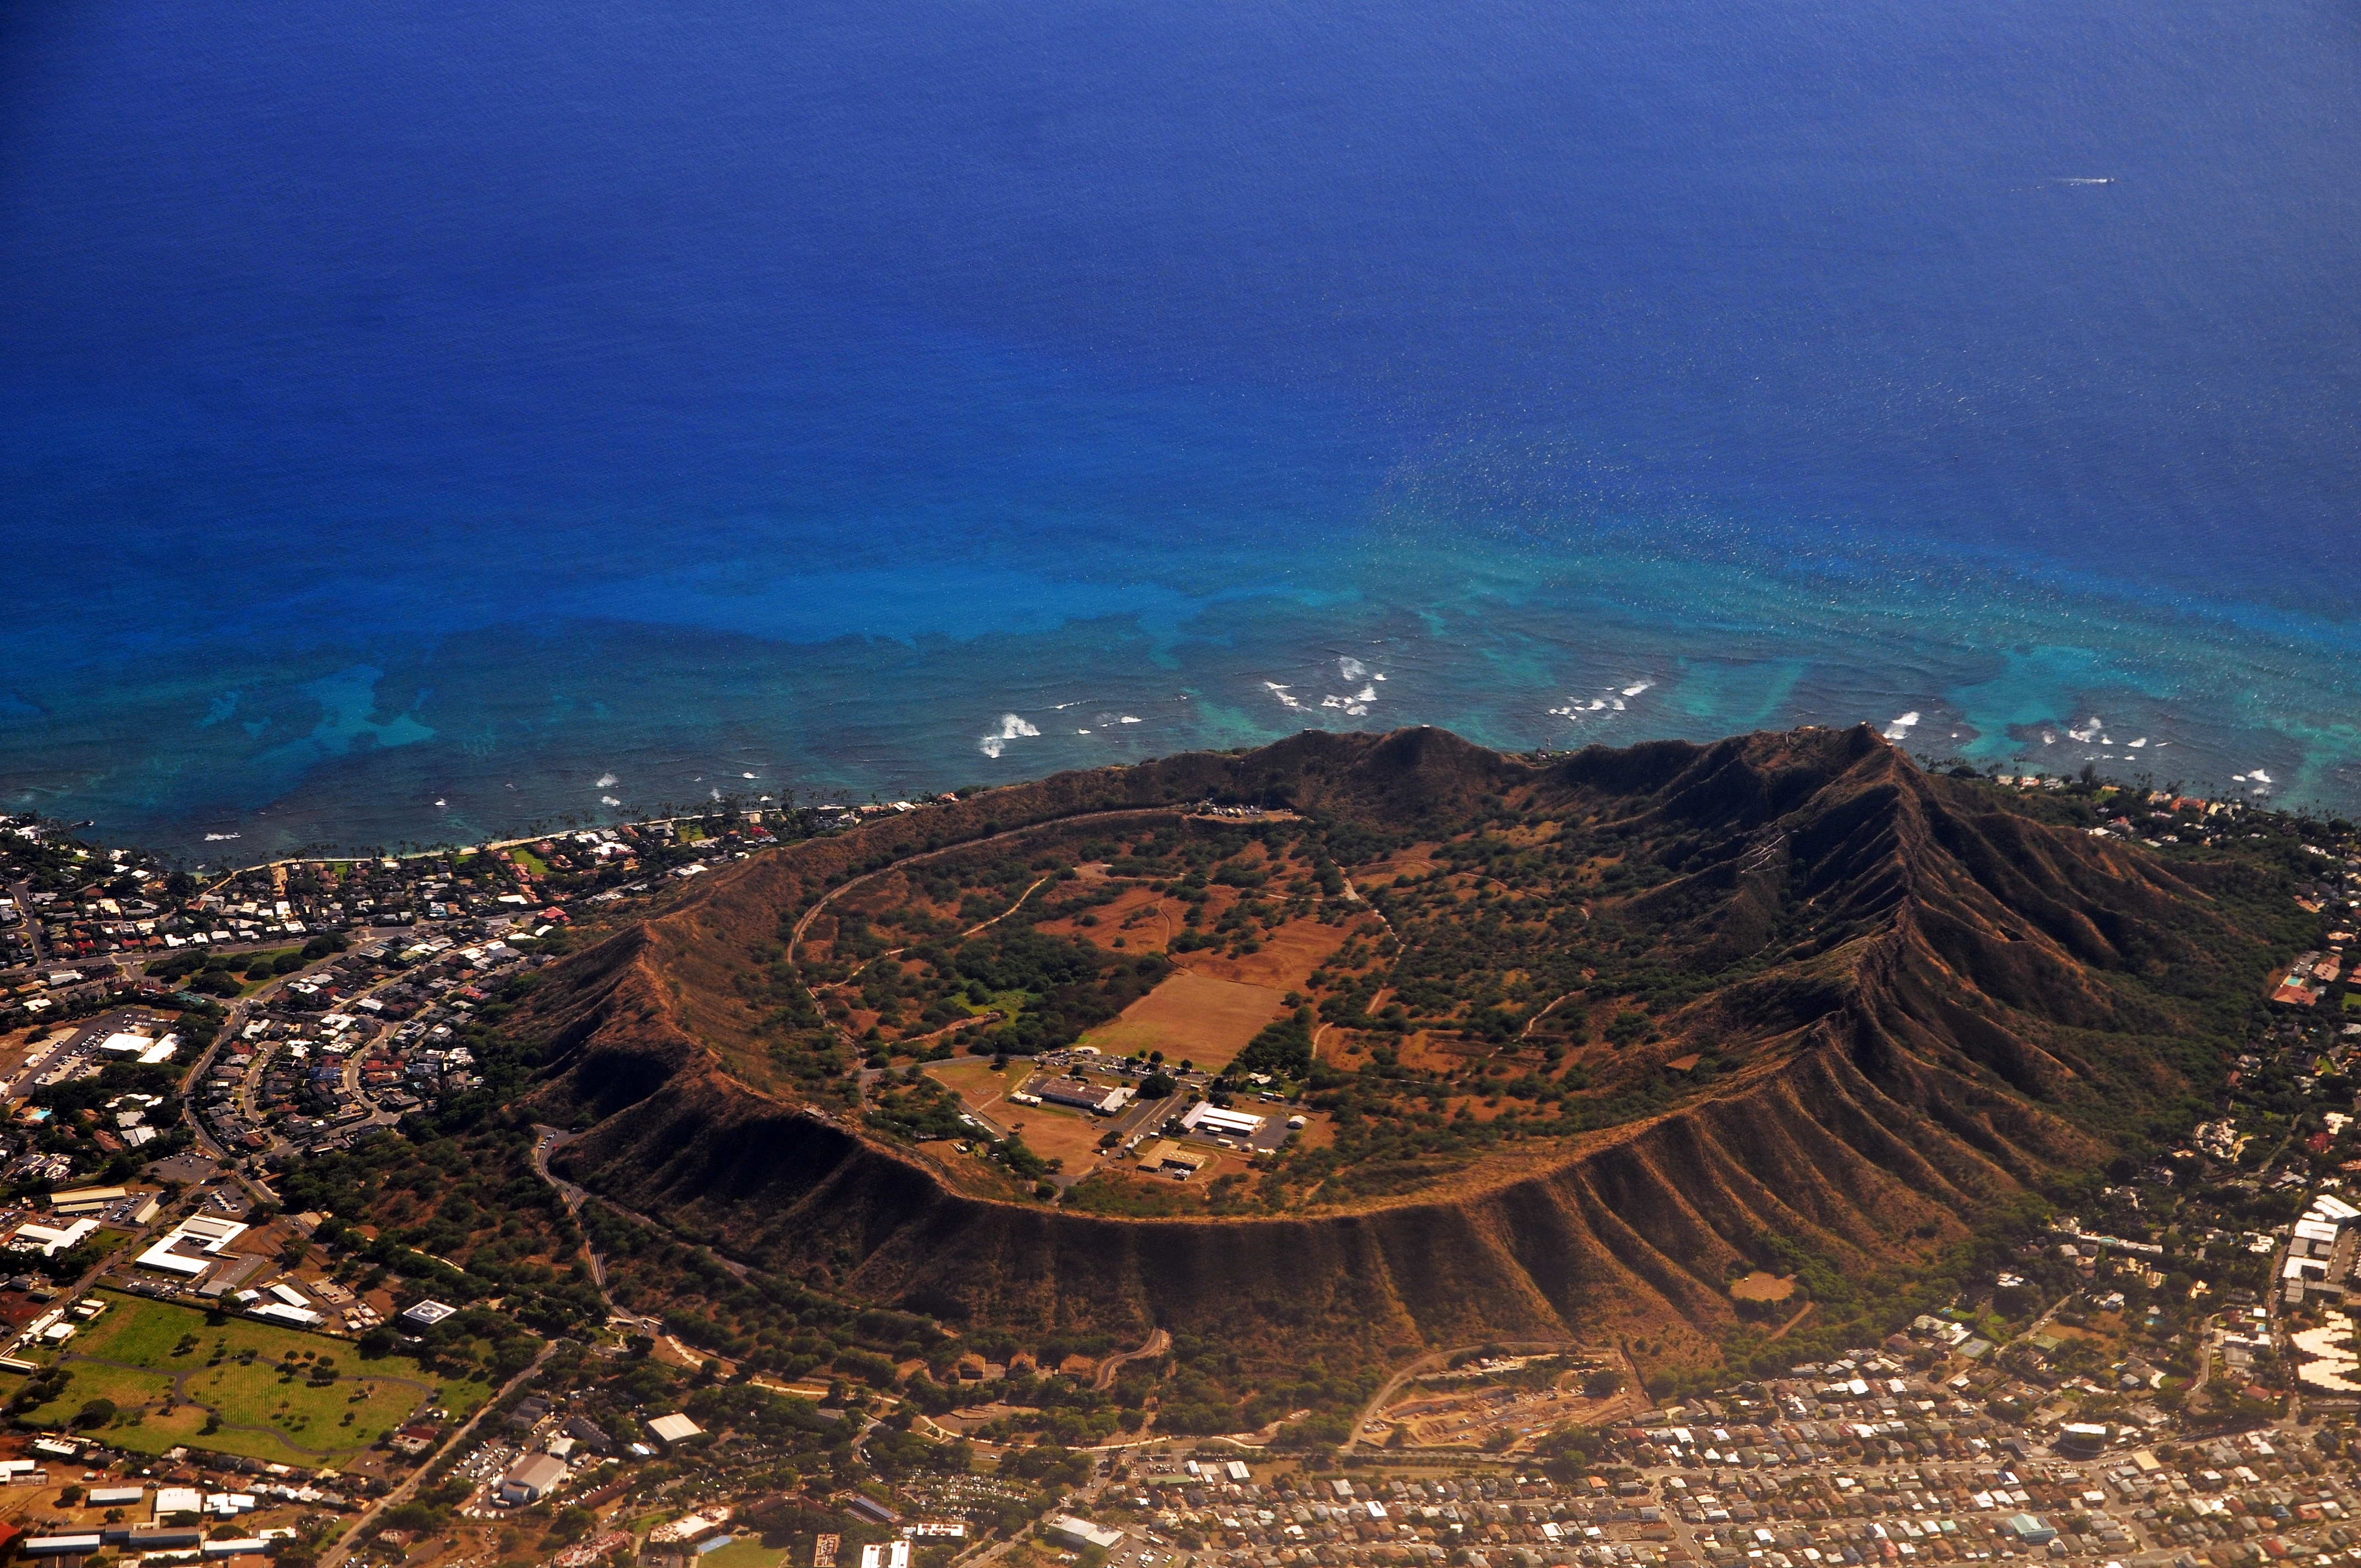 Diamond Head, An Aerial view of extinct volcanic crater in Hawaii